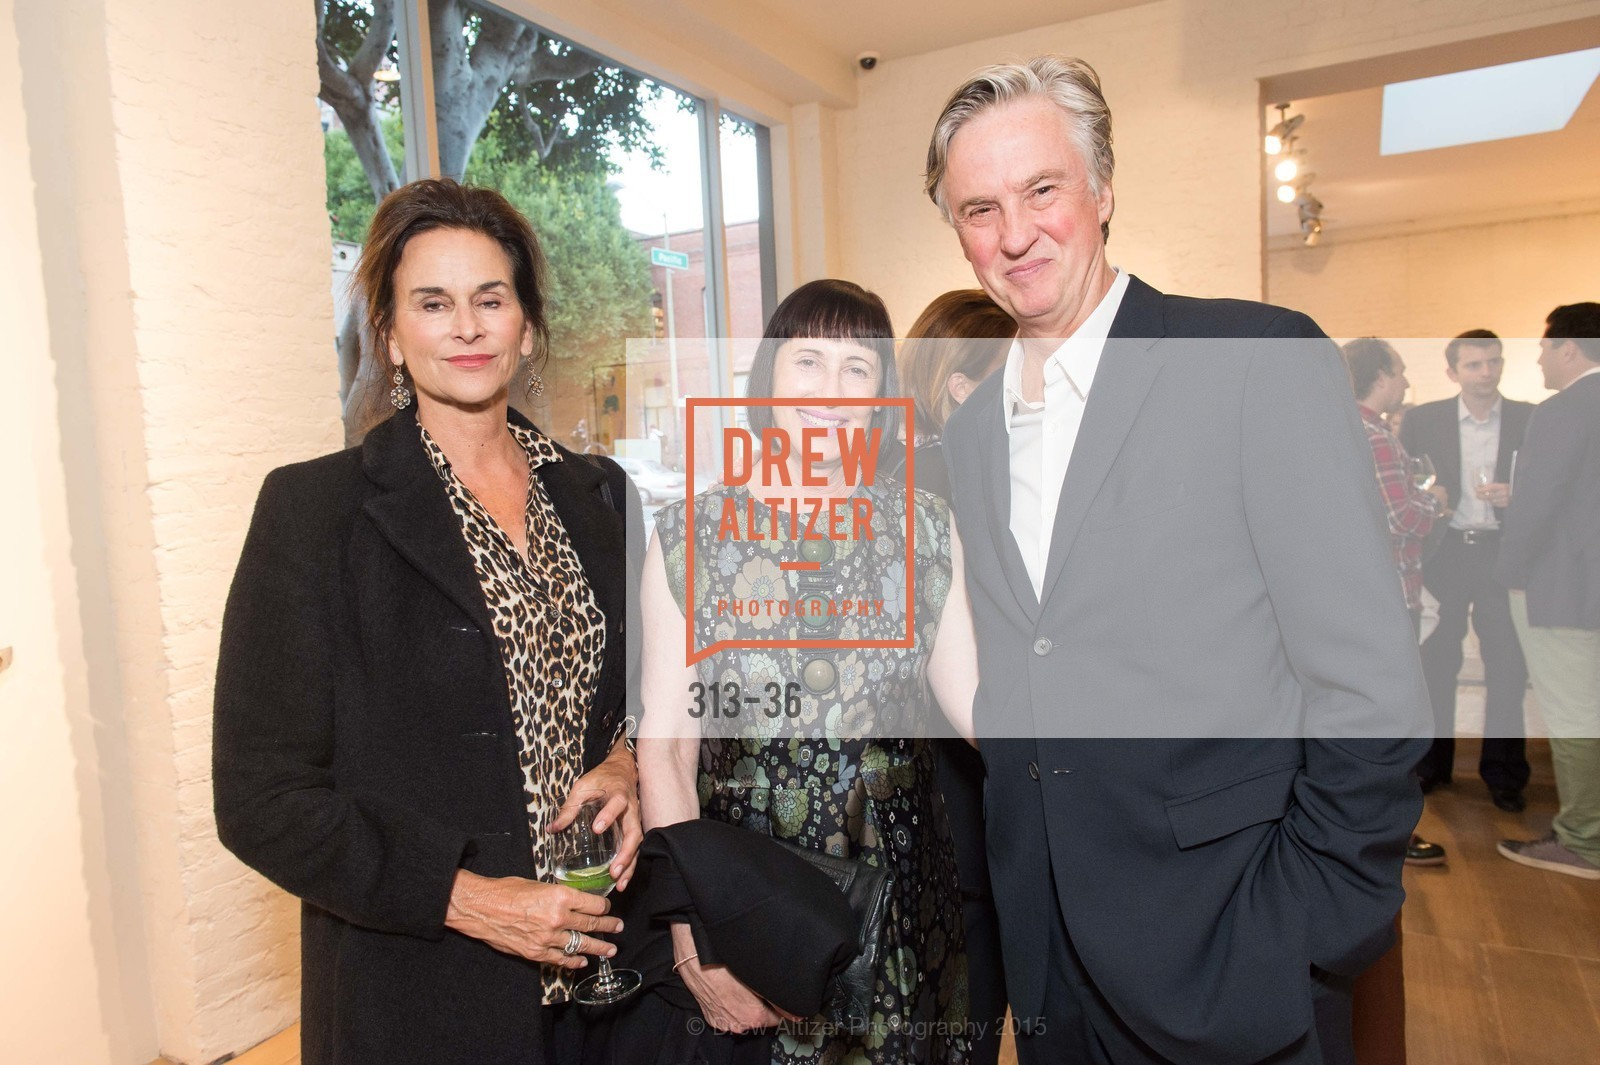 Becky Draper, Carla Emil, Post War and Contemporary preview at Hedge Gallery , Hedge Gallery. 501 Pacific Ave, San Francisco, CA 94133, April 16th, 2015,Drew Altizer, Drew Altizer Photography, full-service agency, private events, San Francisco photographer, photographer california